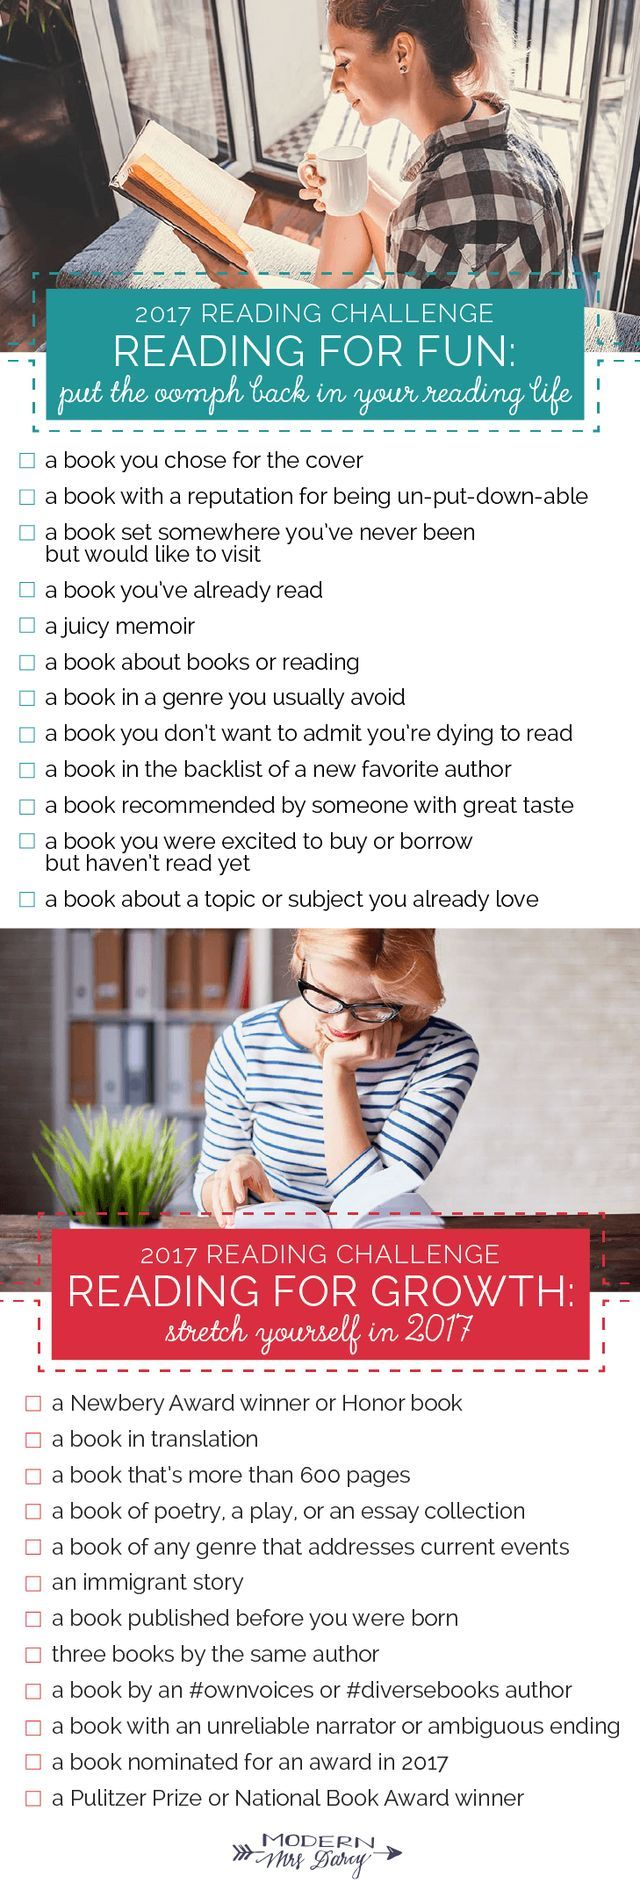 The 2017 Reading Challenge